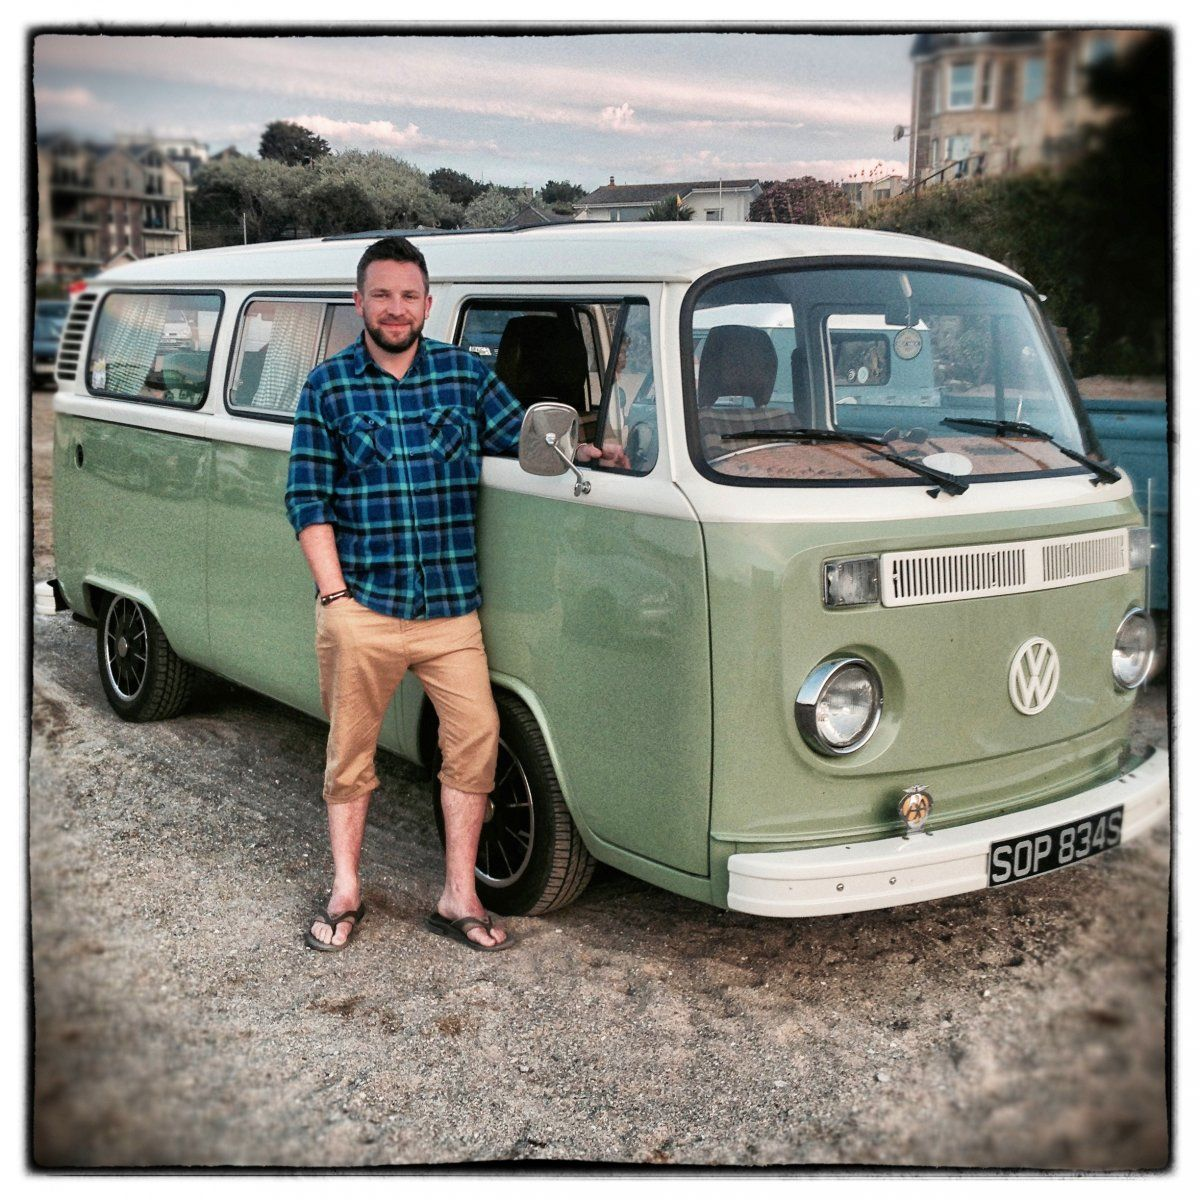 Just Look At All These Happy People And Their Vw Buses Photos Vw Bus Photo Vw Bus Happy People